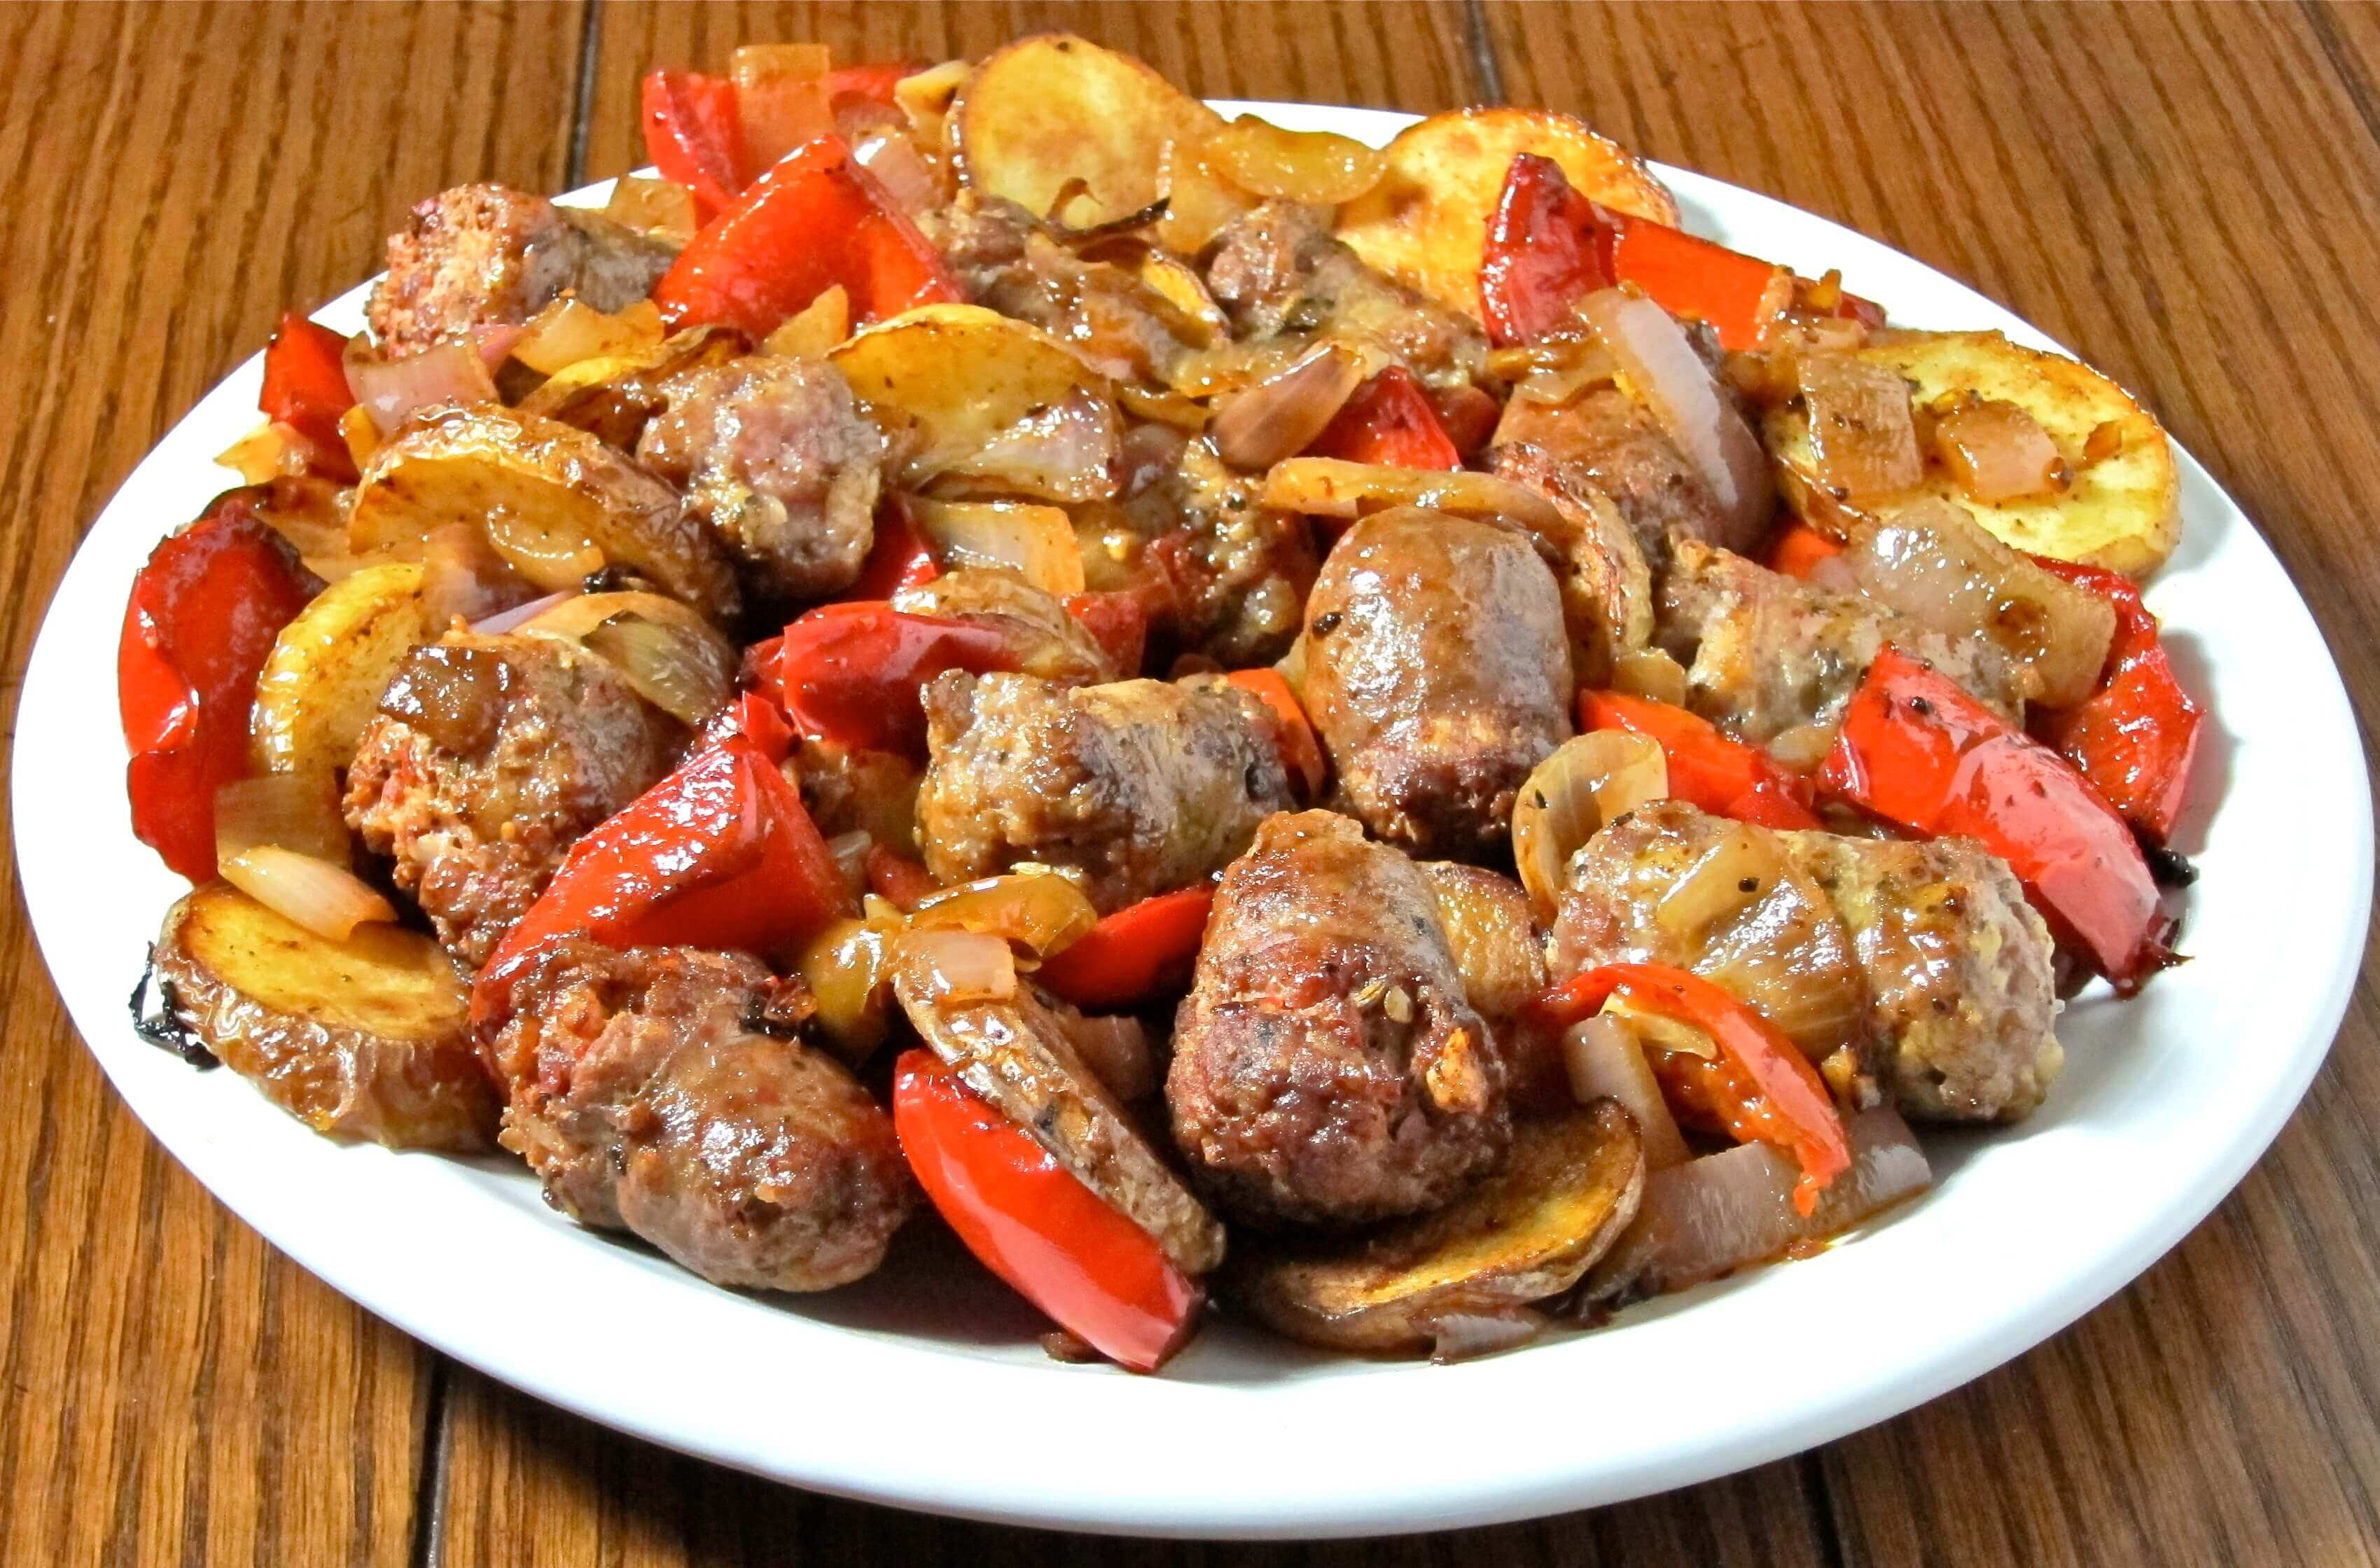 Breakfast Sausage Sautéed with Red and Green Bell Peppers